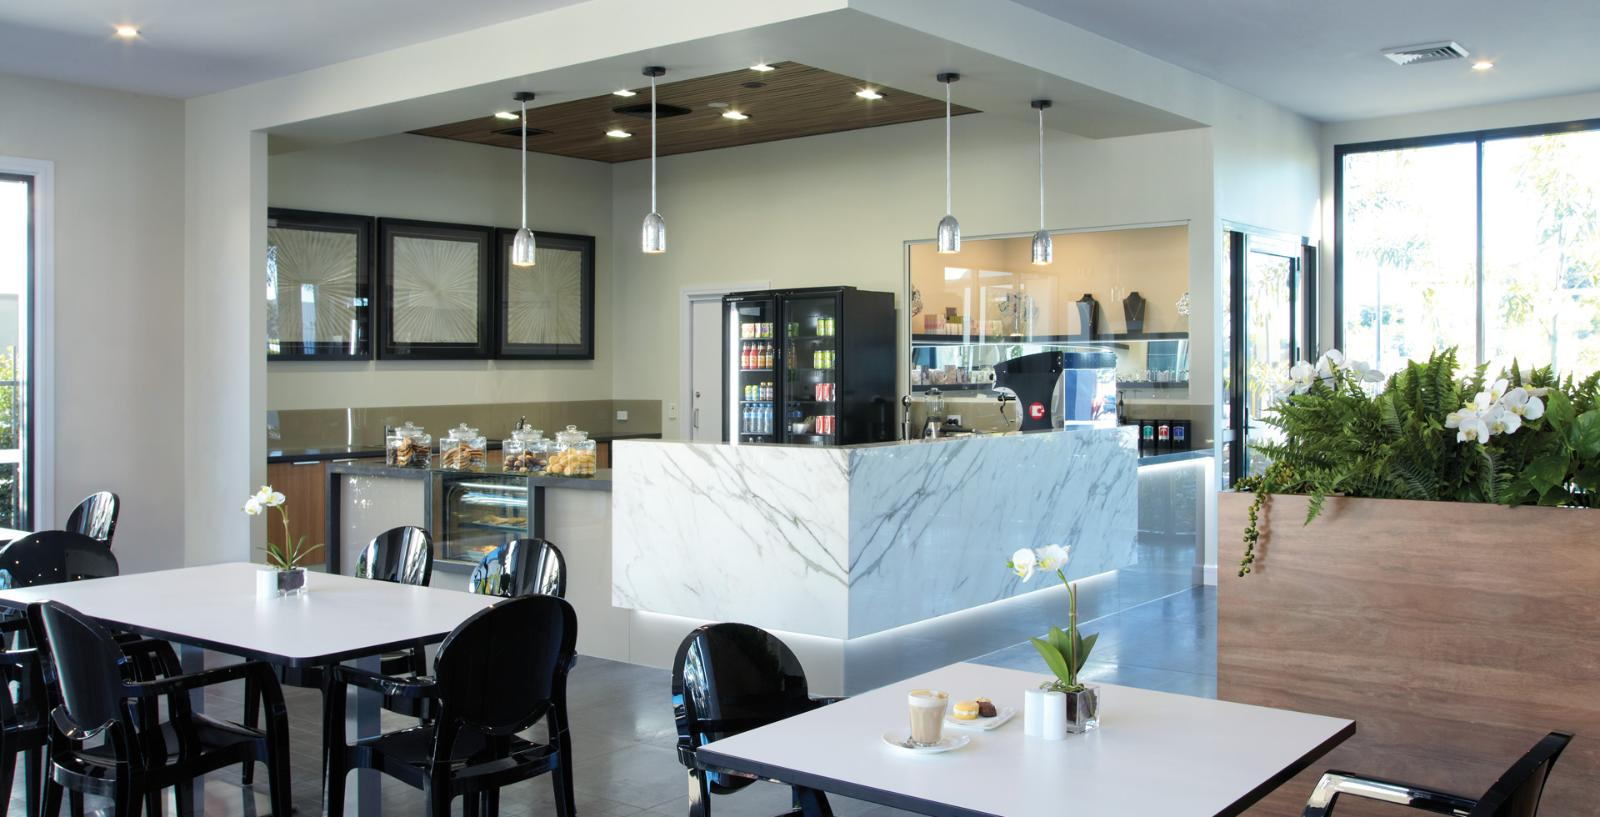 Arcare aged care maroochydore cafe 01